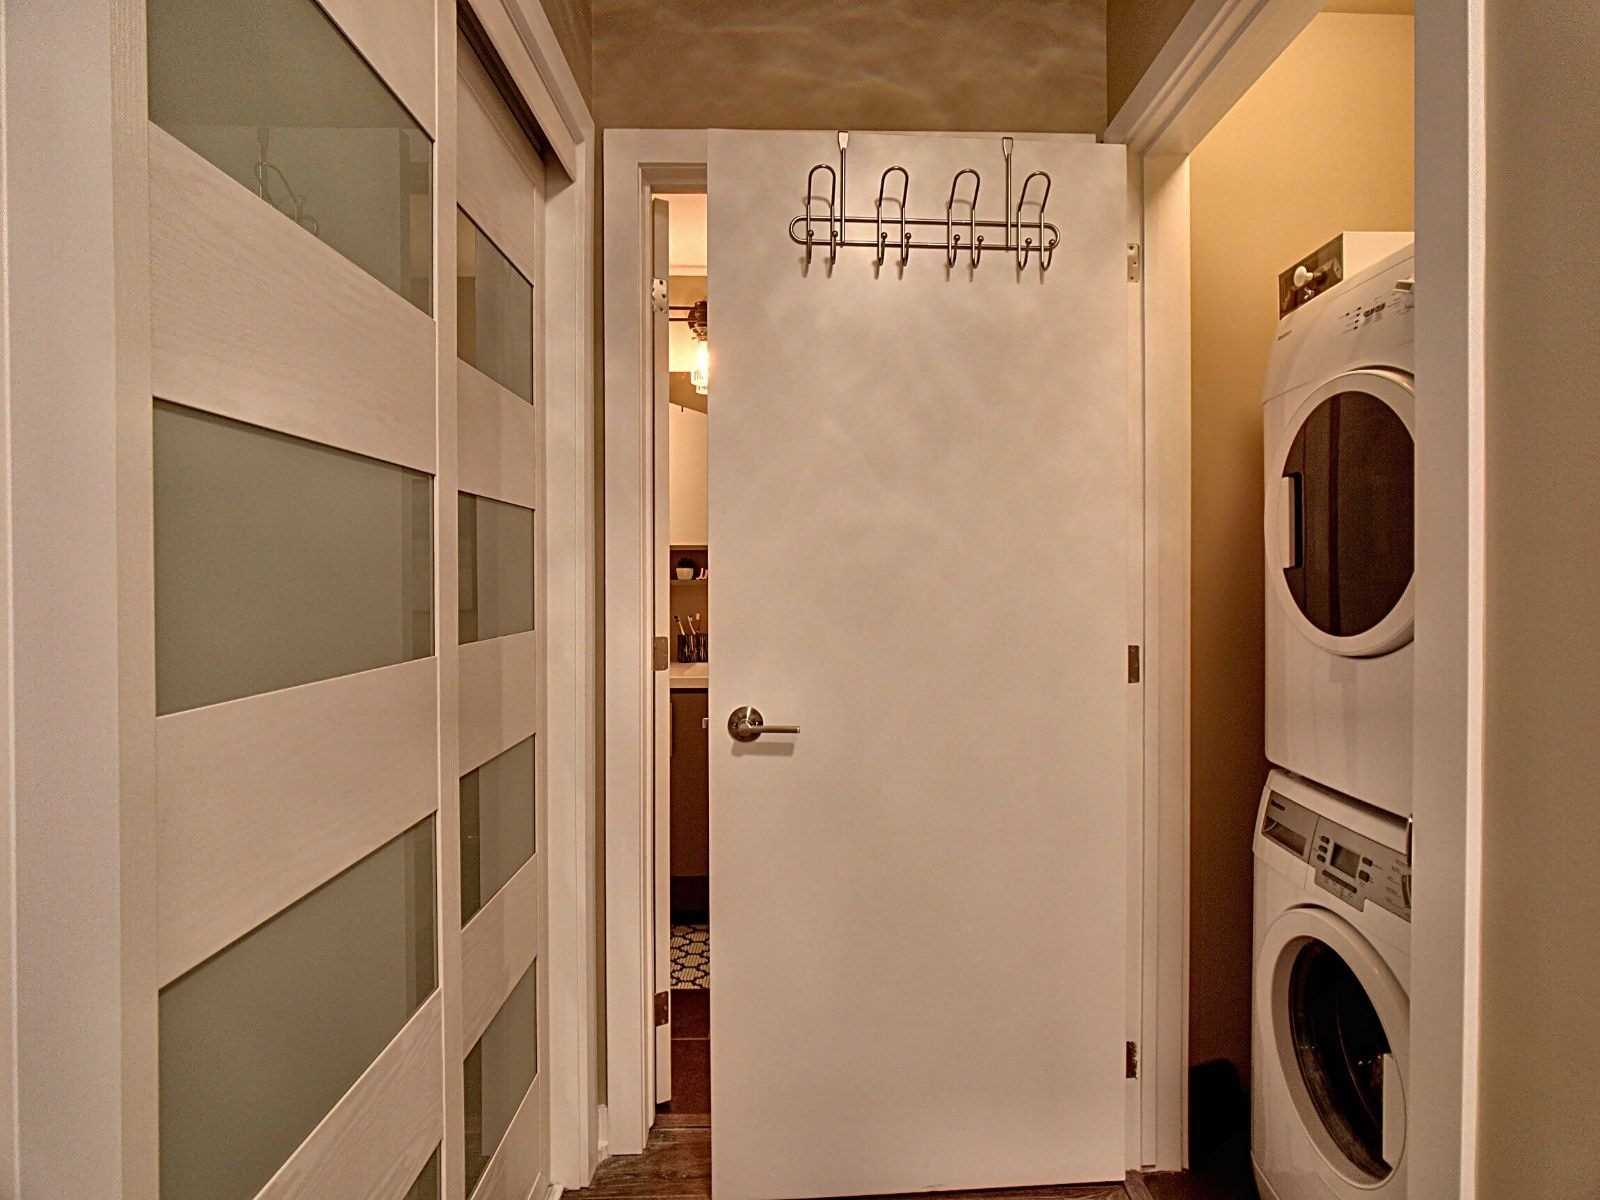 Image 20 of 20 showing inside of 1 Bedroom Condo Apt Multi-Level for Sale at 40 Esplanade Lane Unit# 421, Grimsby L3M0G9